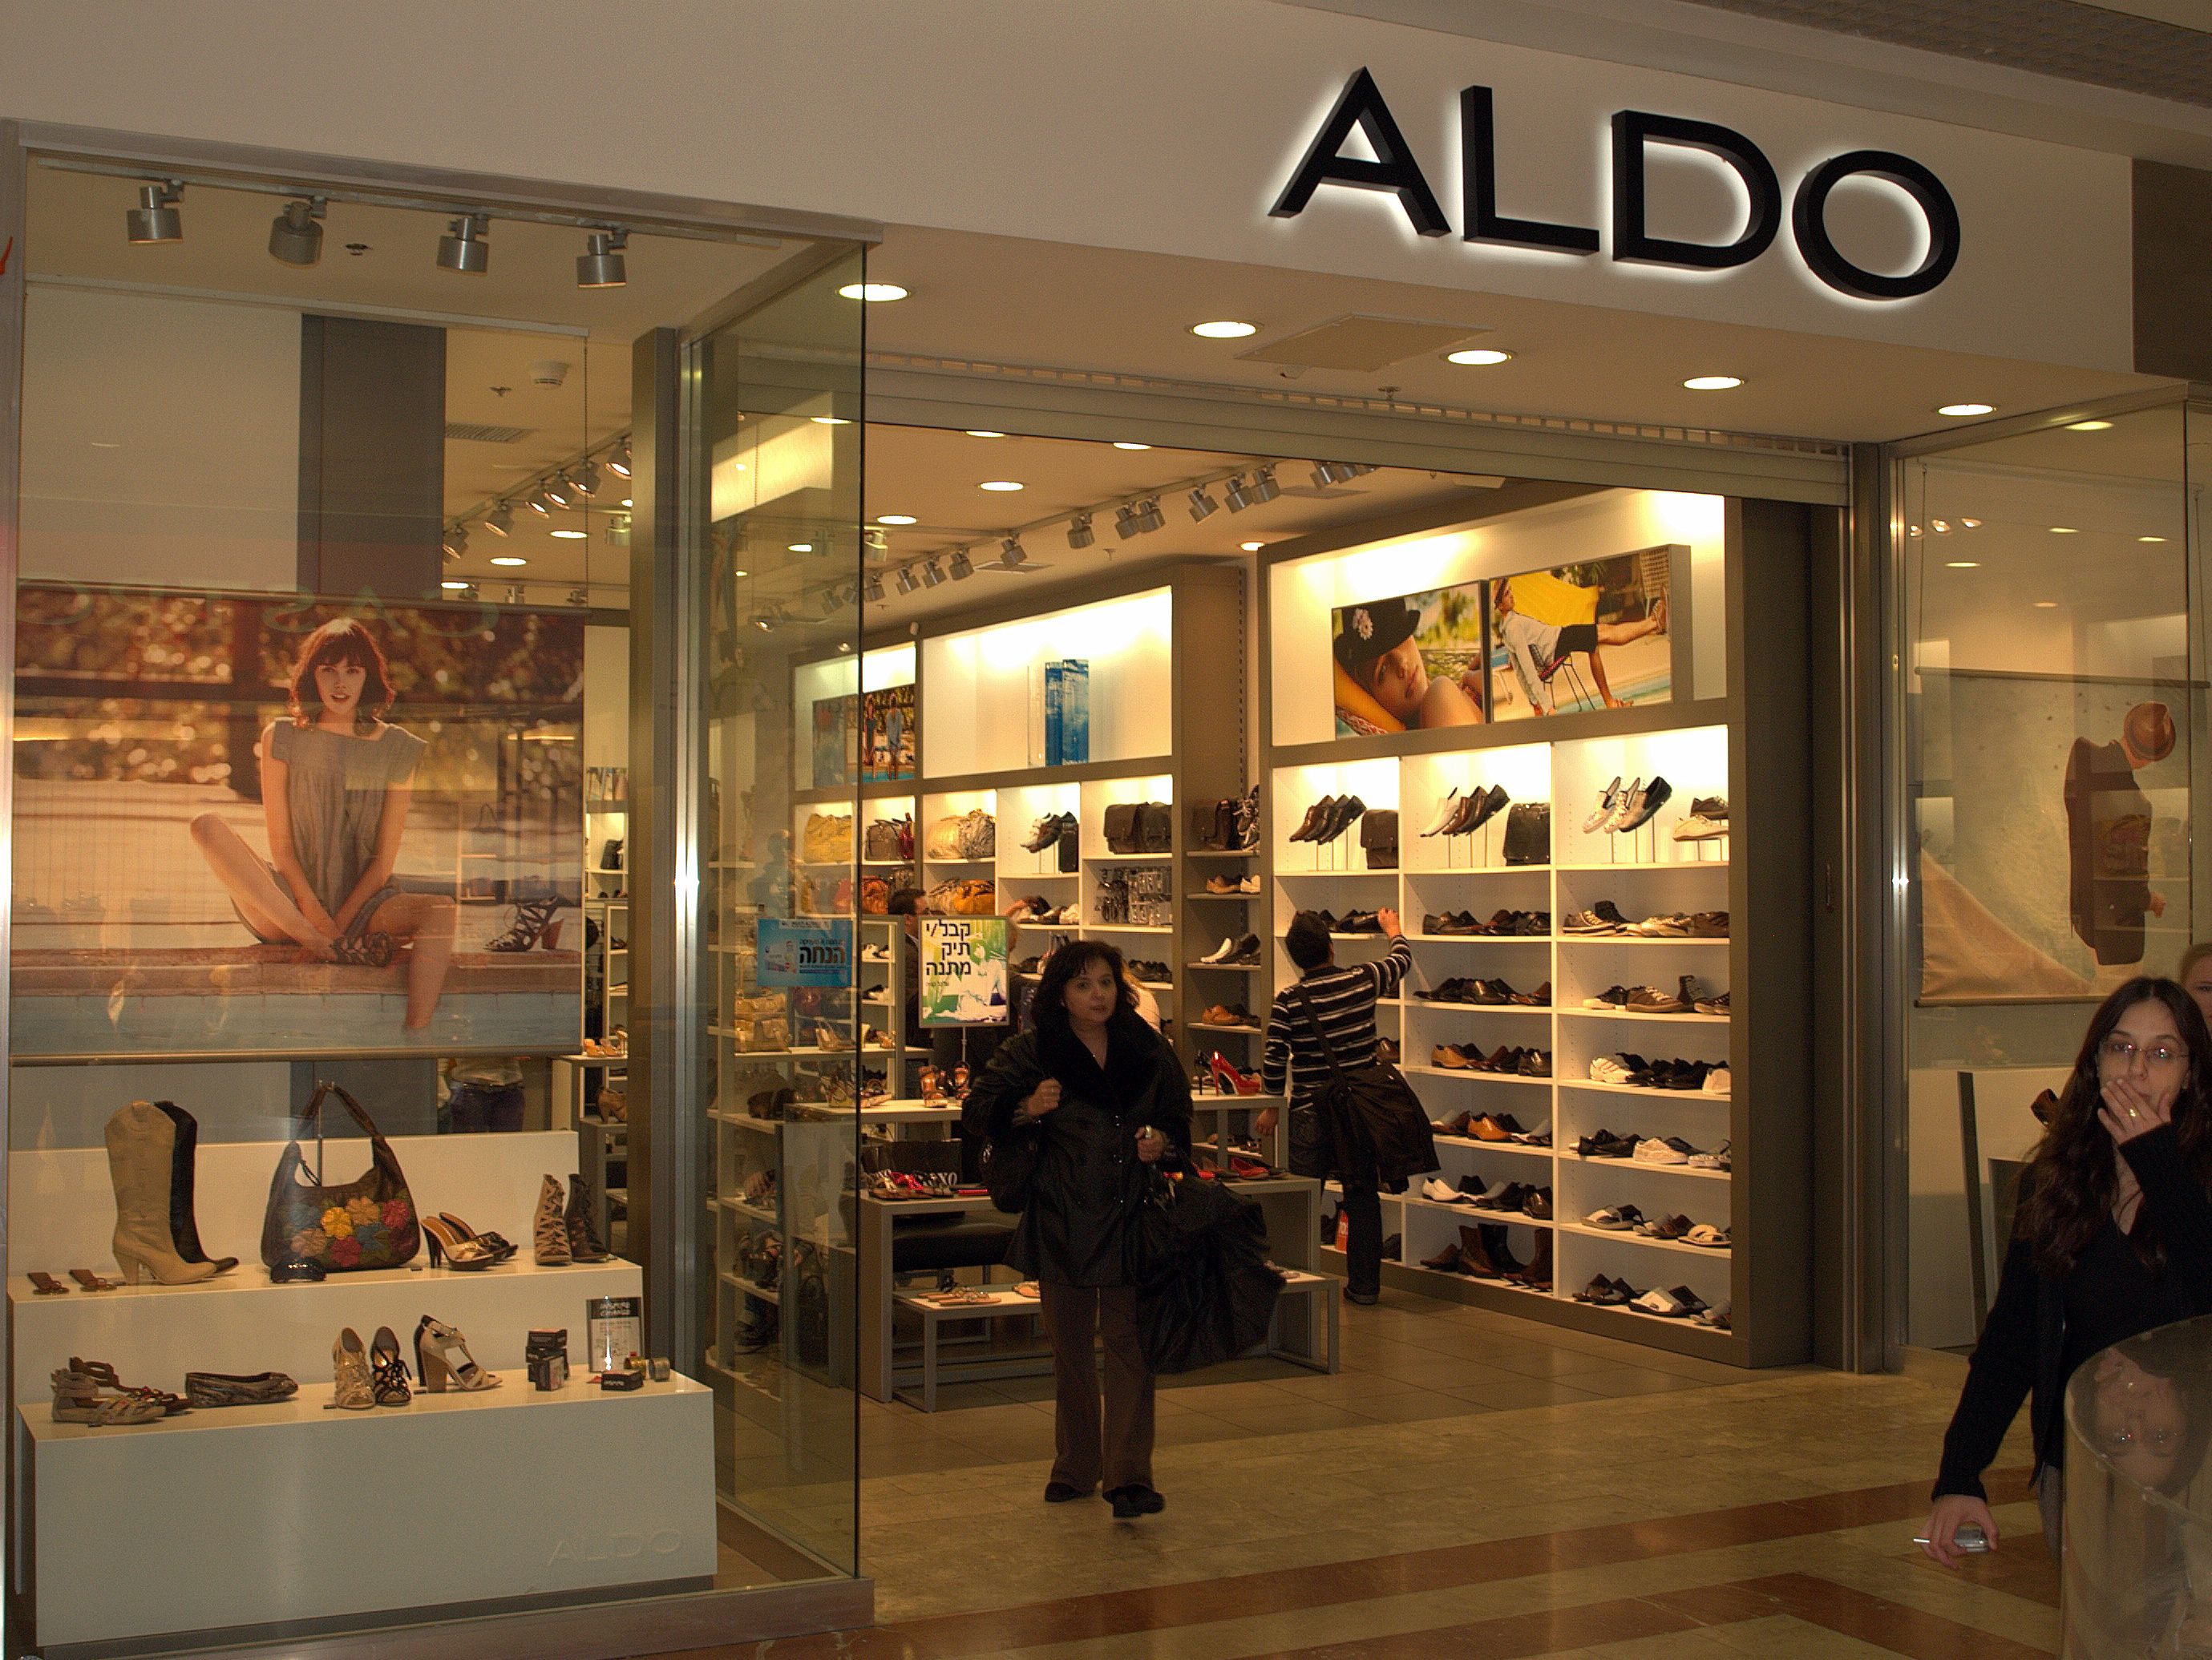 Aldo at Fashion Valley - A Shopping Center in San Diego, CA - A 48